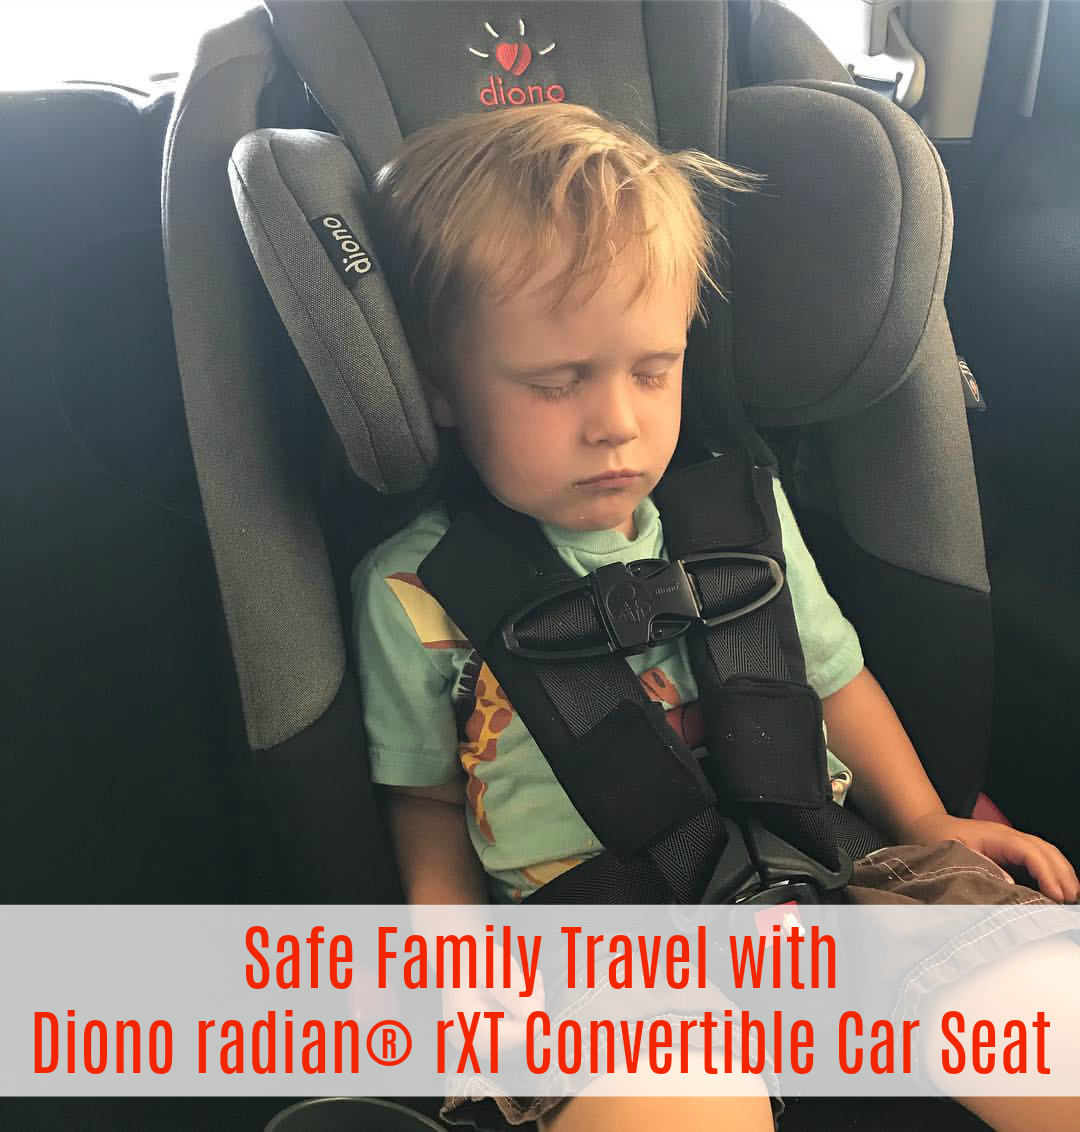 Diono is a top brand in child safety and with all of the traveling we have been doing this year i want to make sure my family is safe